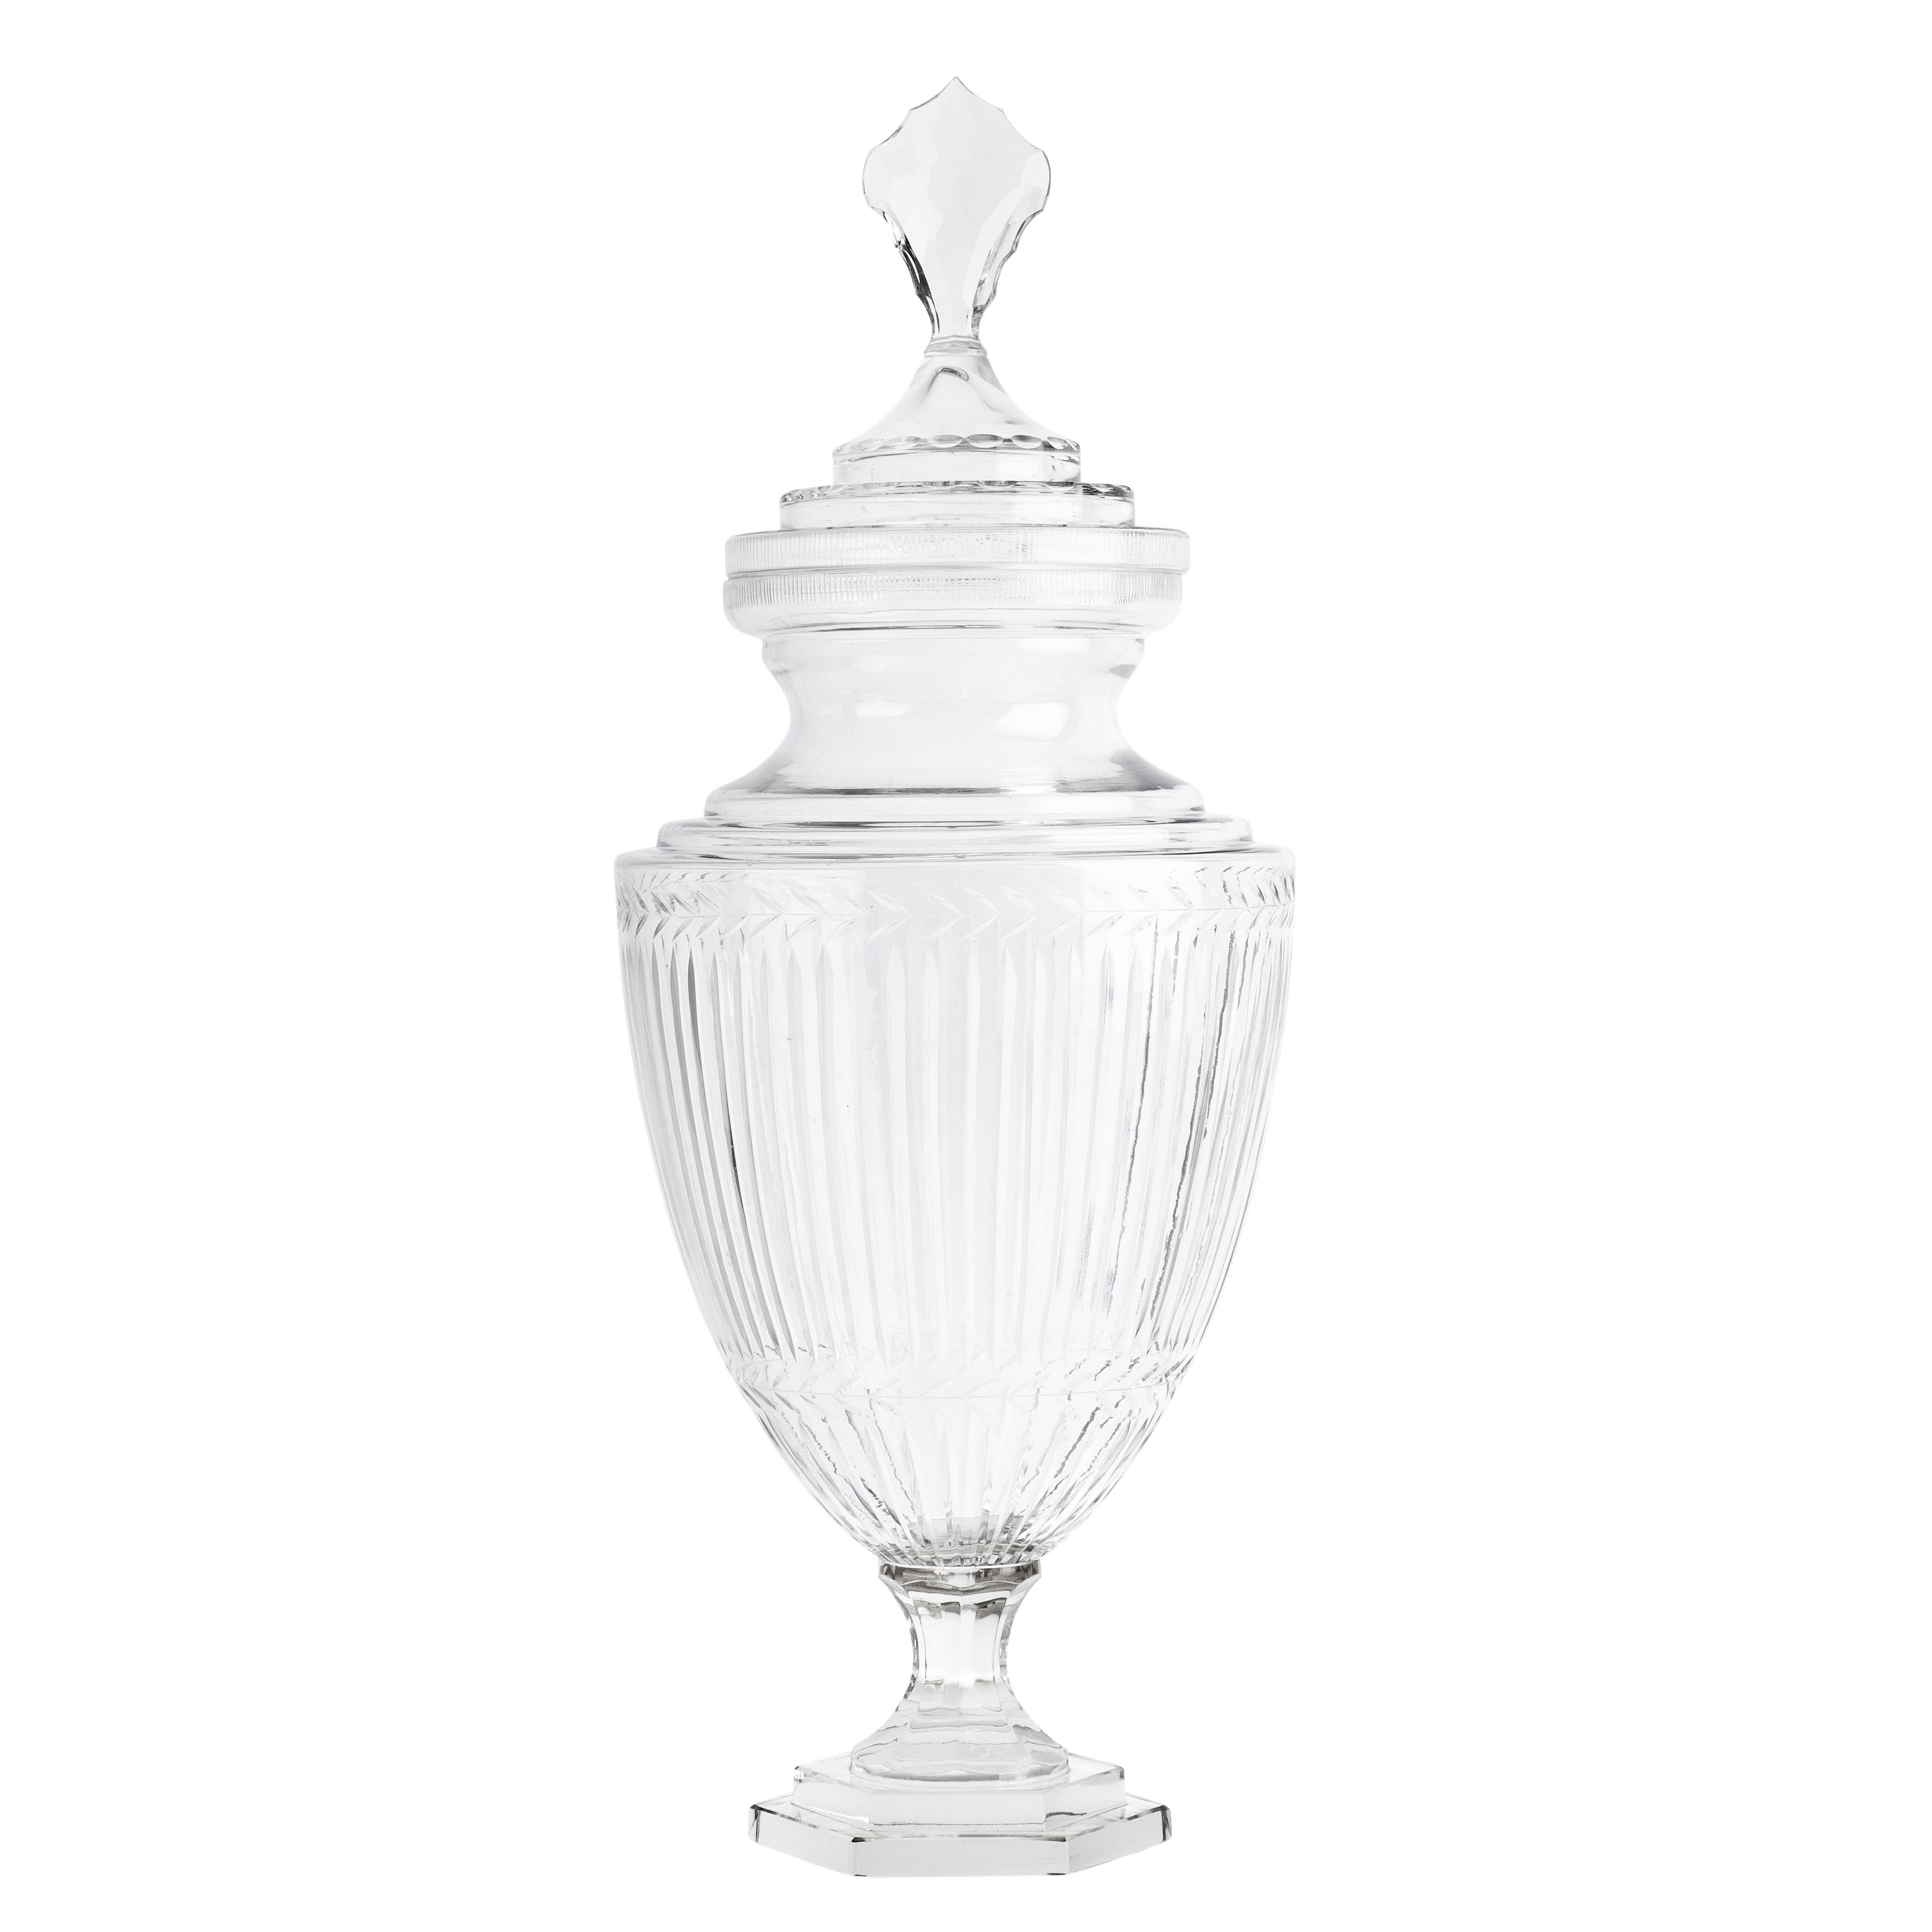 Vase Hoch Vase With Top